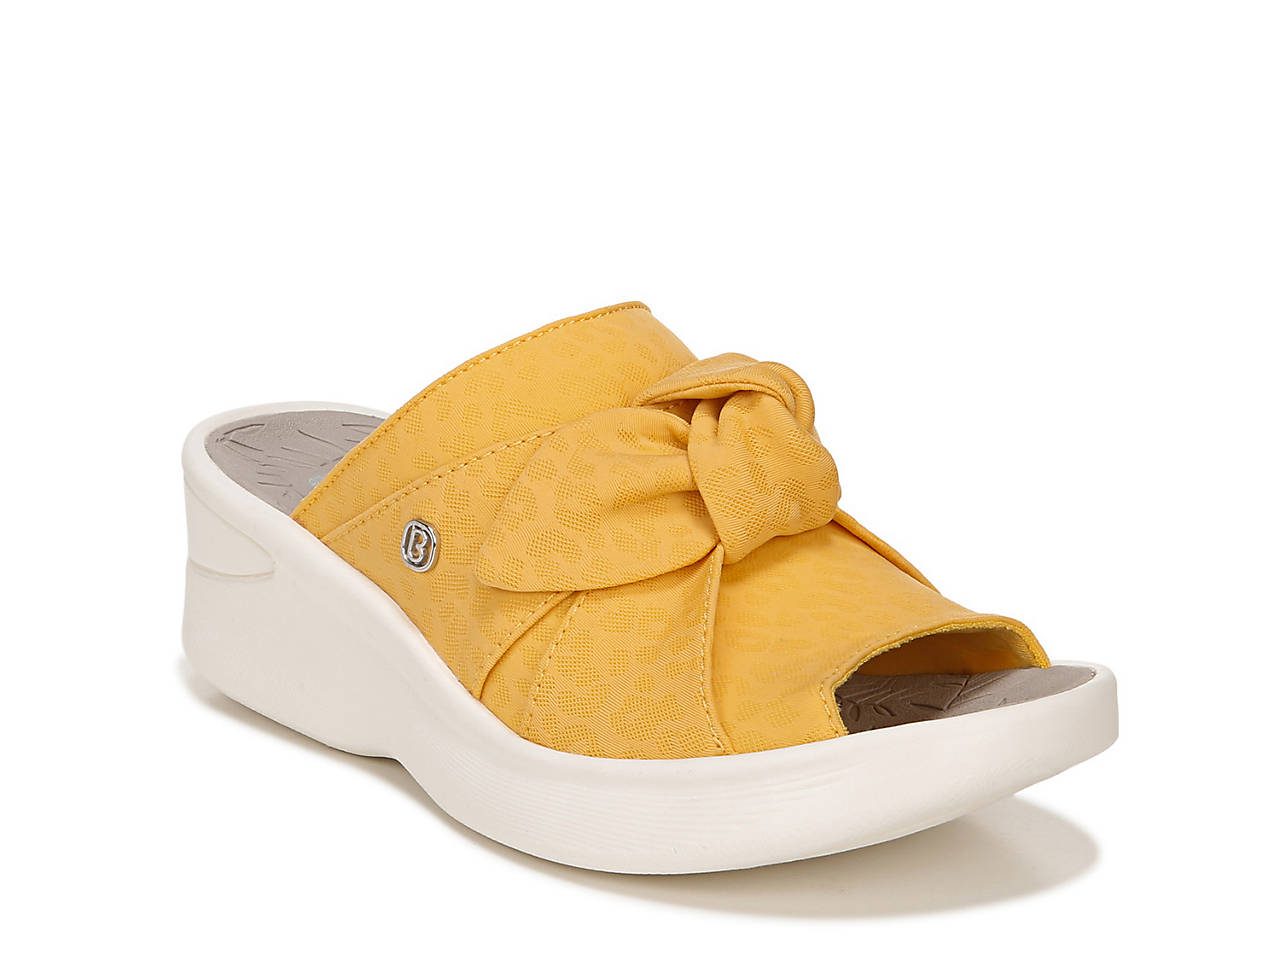 Sandals for Pregnant Women in Summer